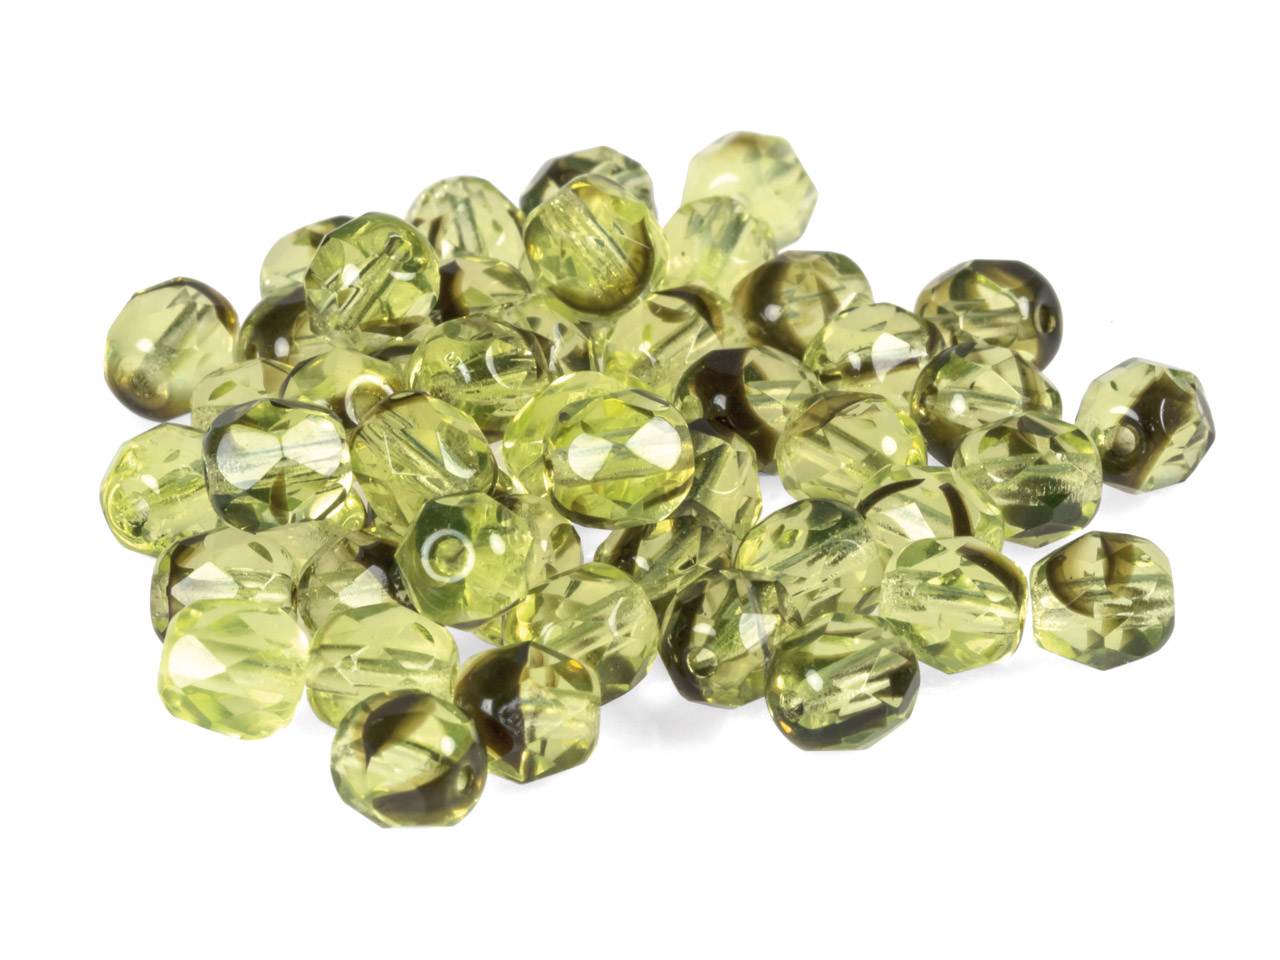 6mm Czech Fire Polished Glass      Beads, 2-tone Green And Black,     Pack of 50